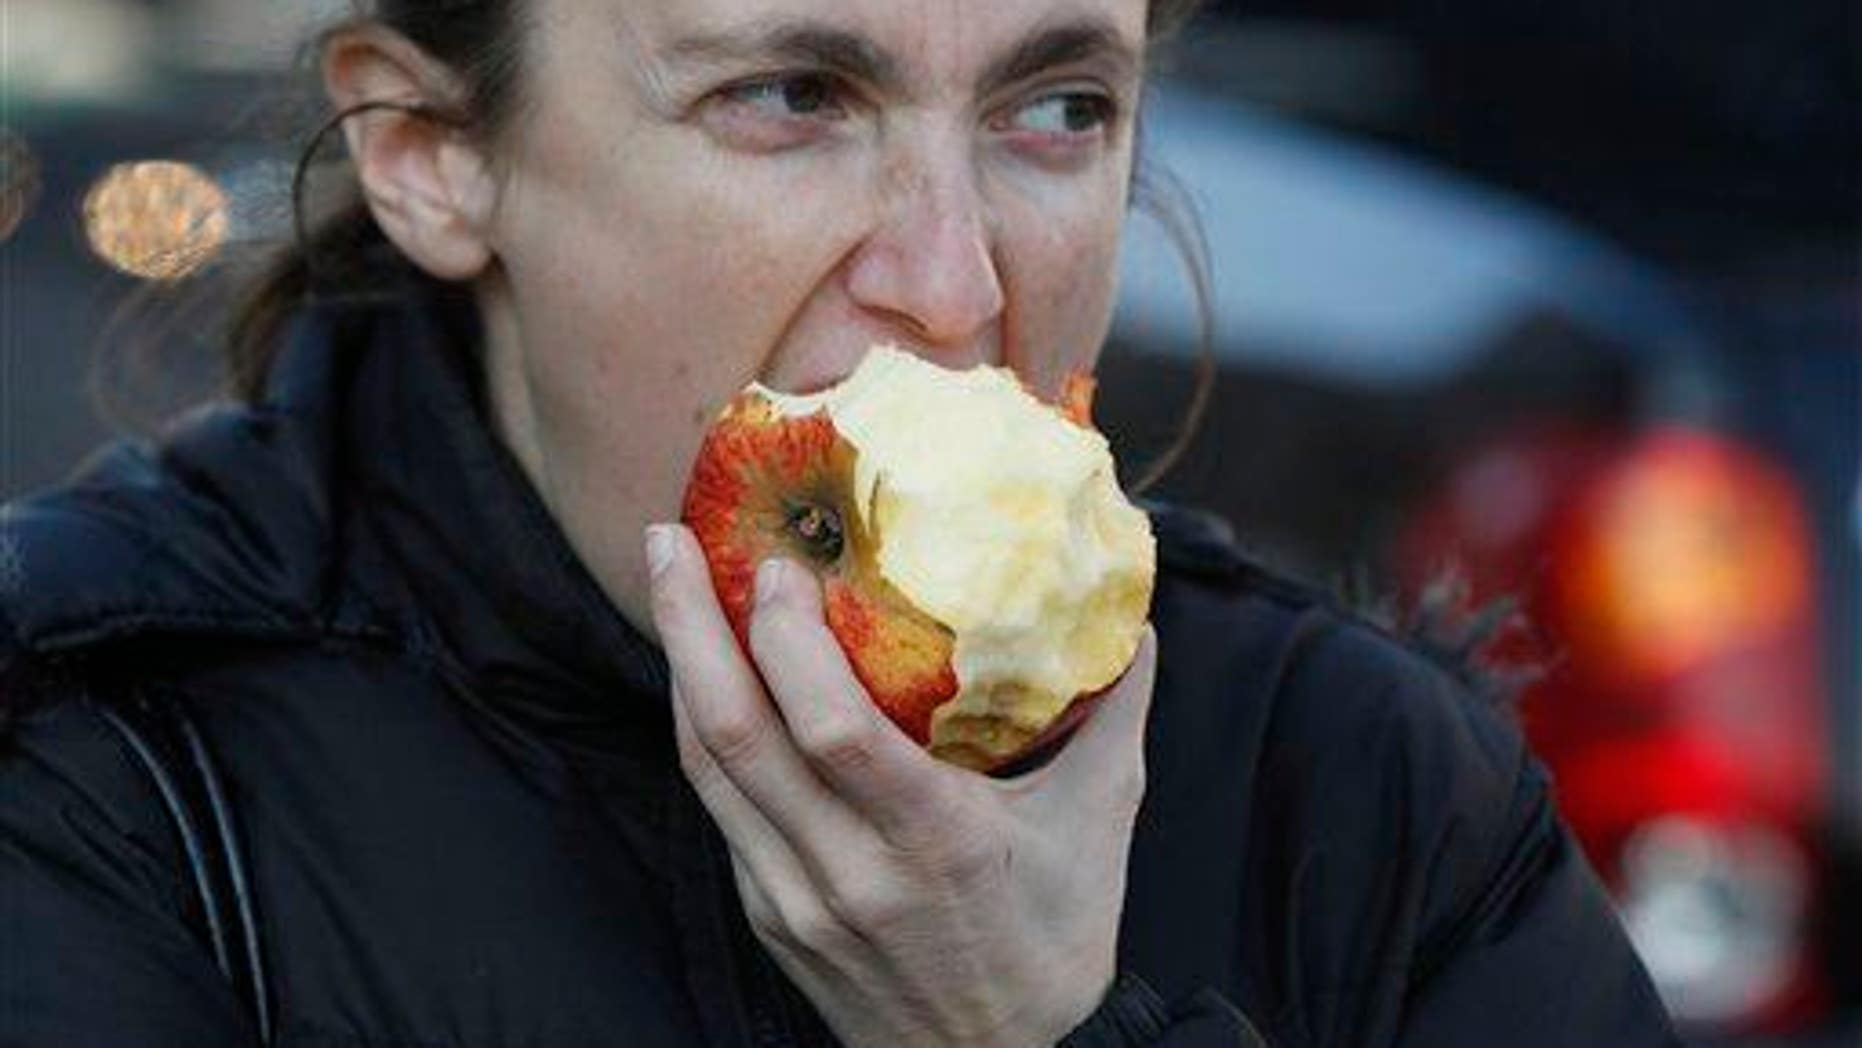 Might want to scan that apple with a laser before eating it.